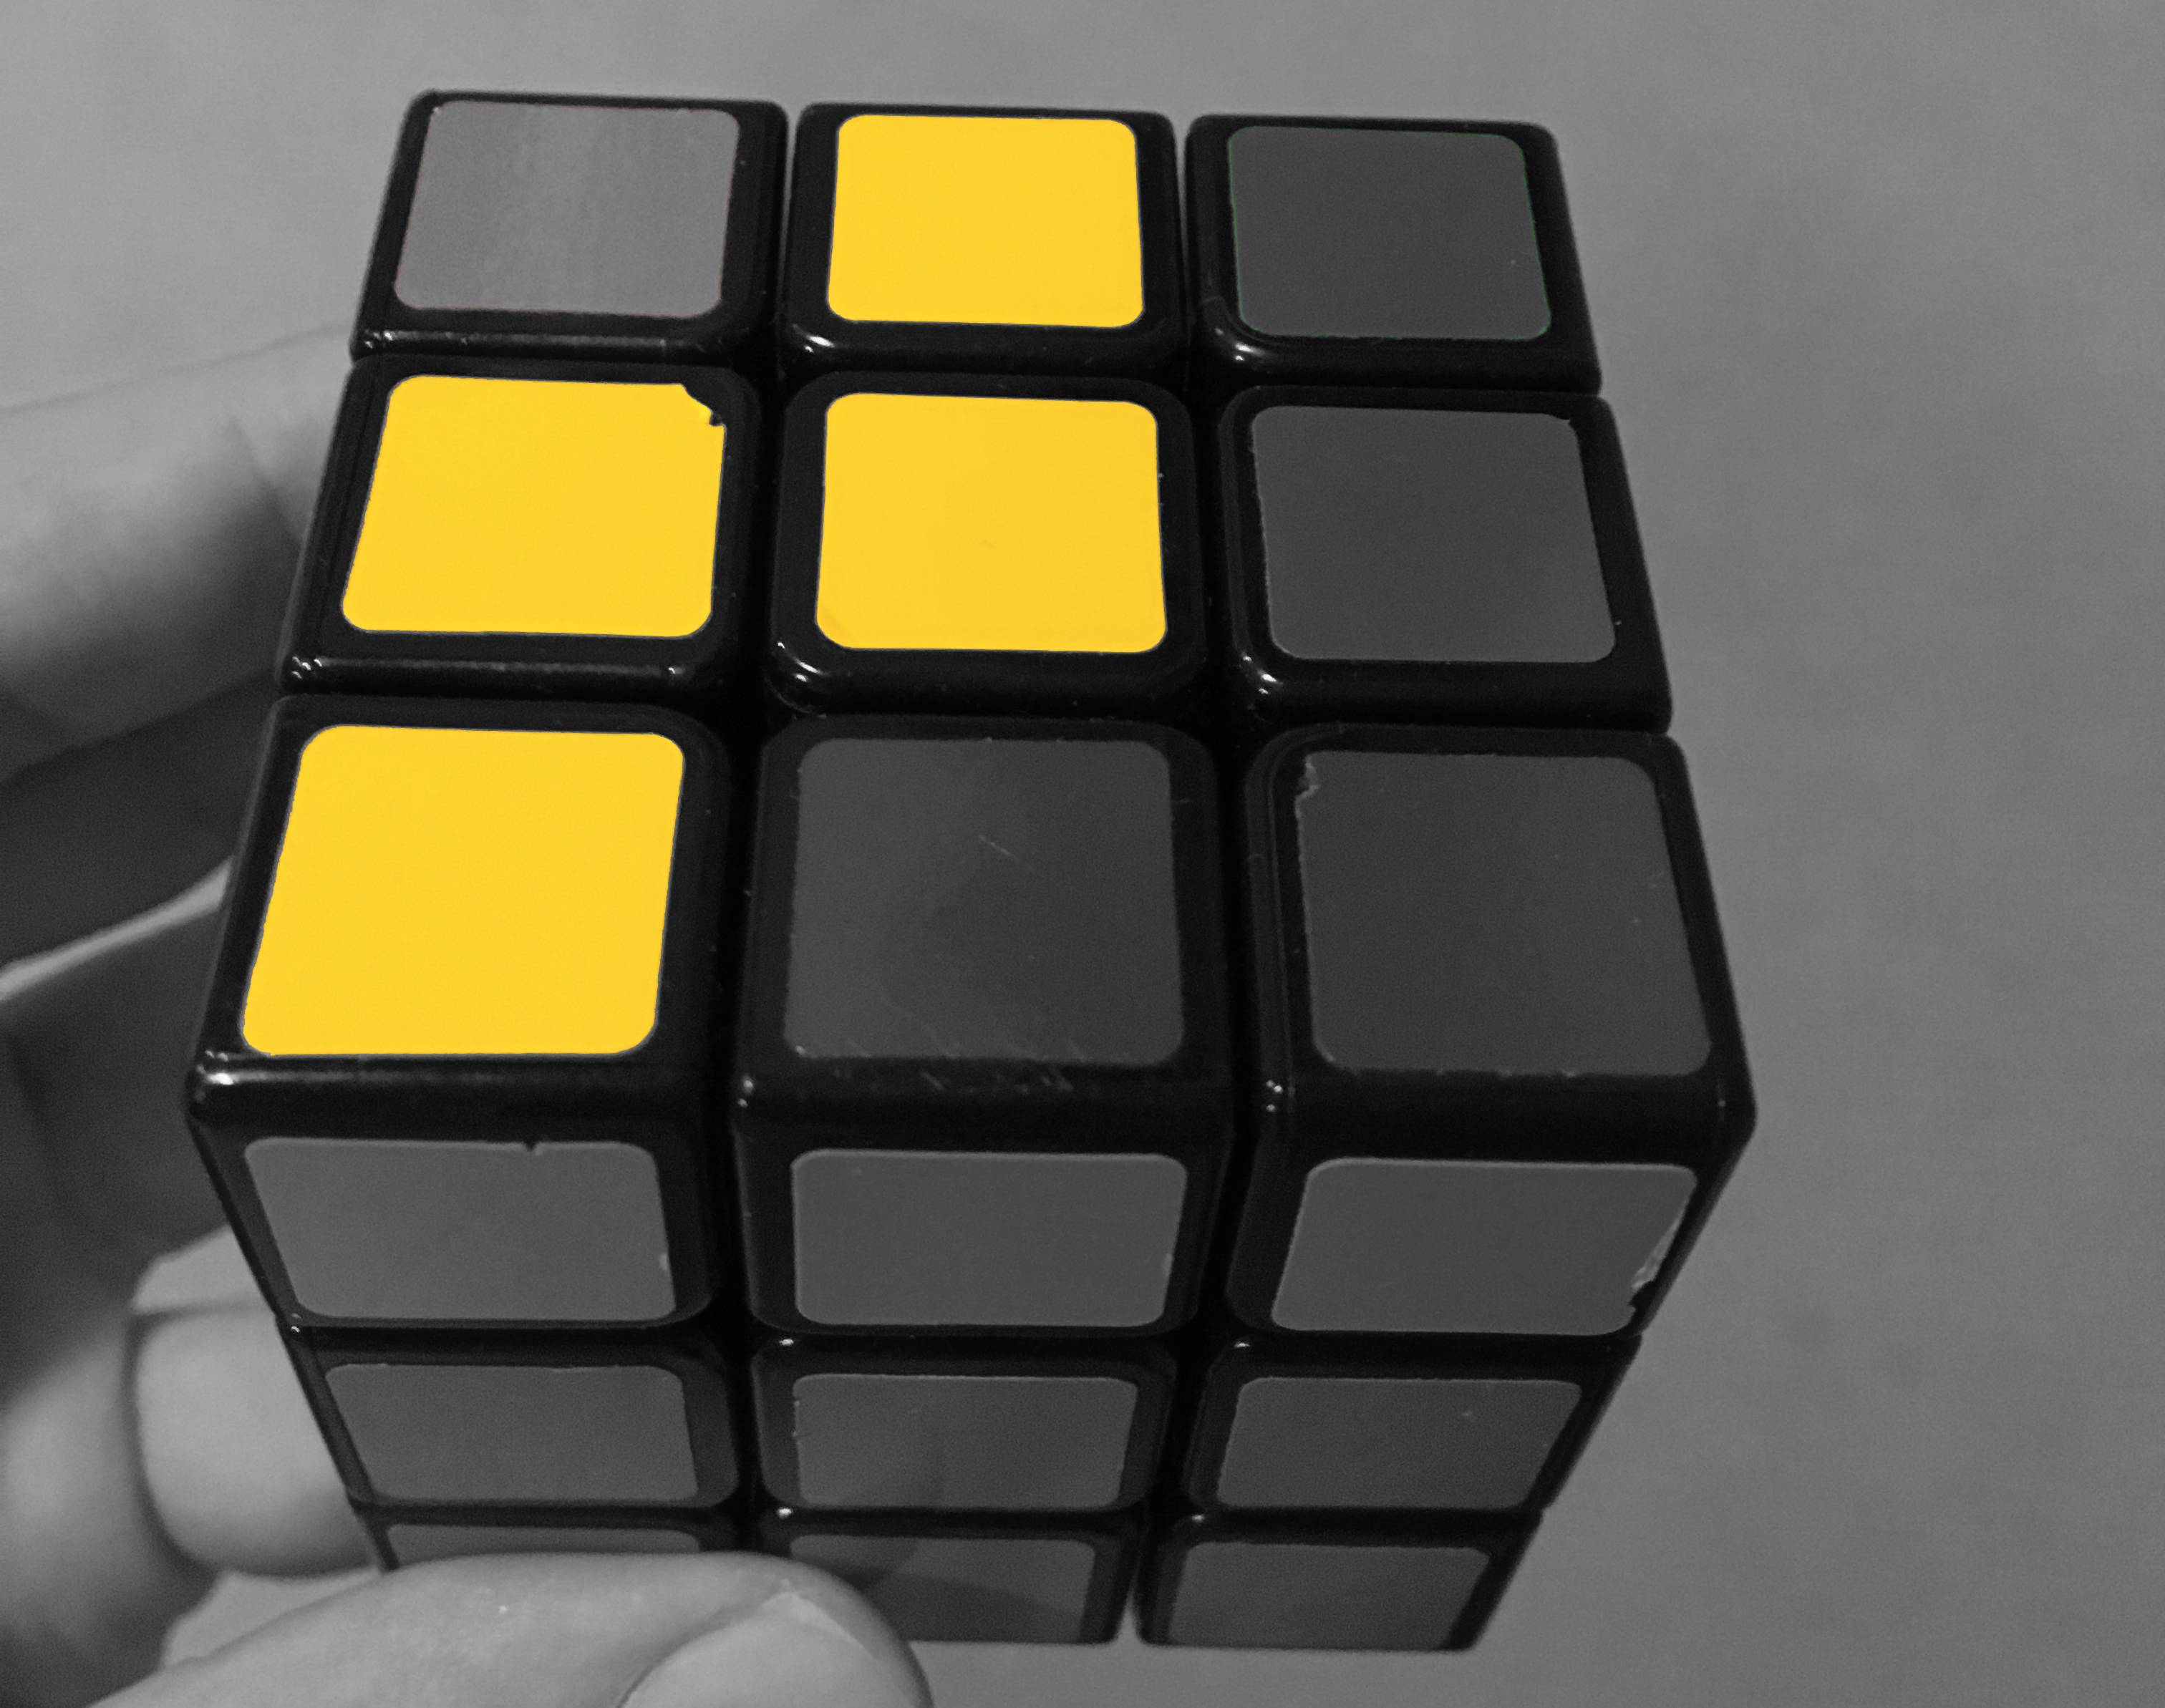 Solve A Rubik S Cube In Under 20 Seconds